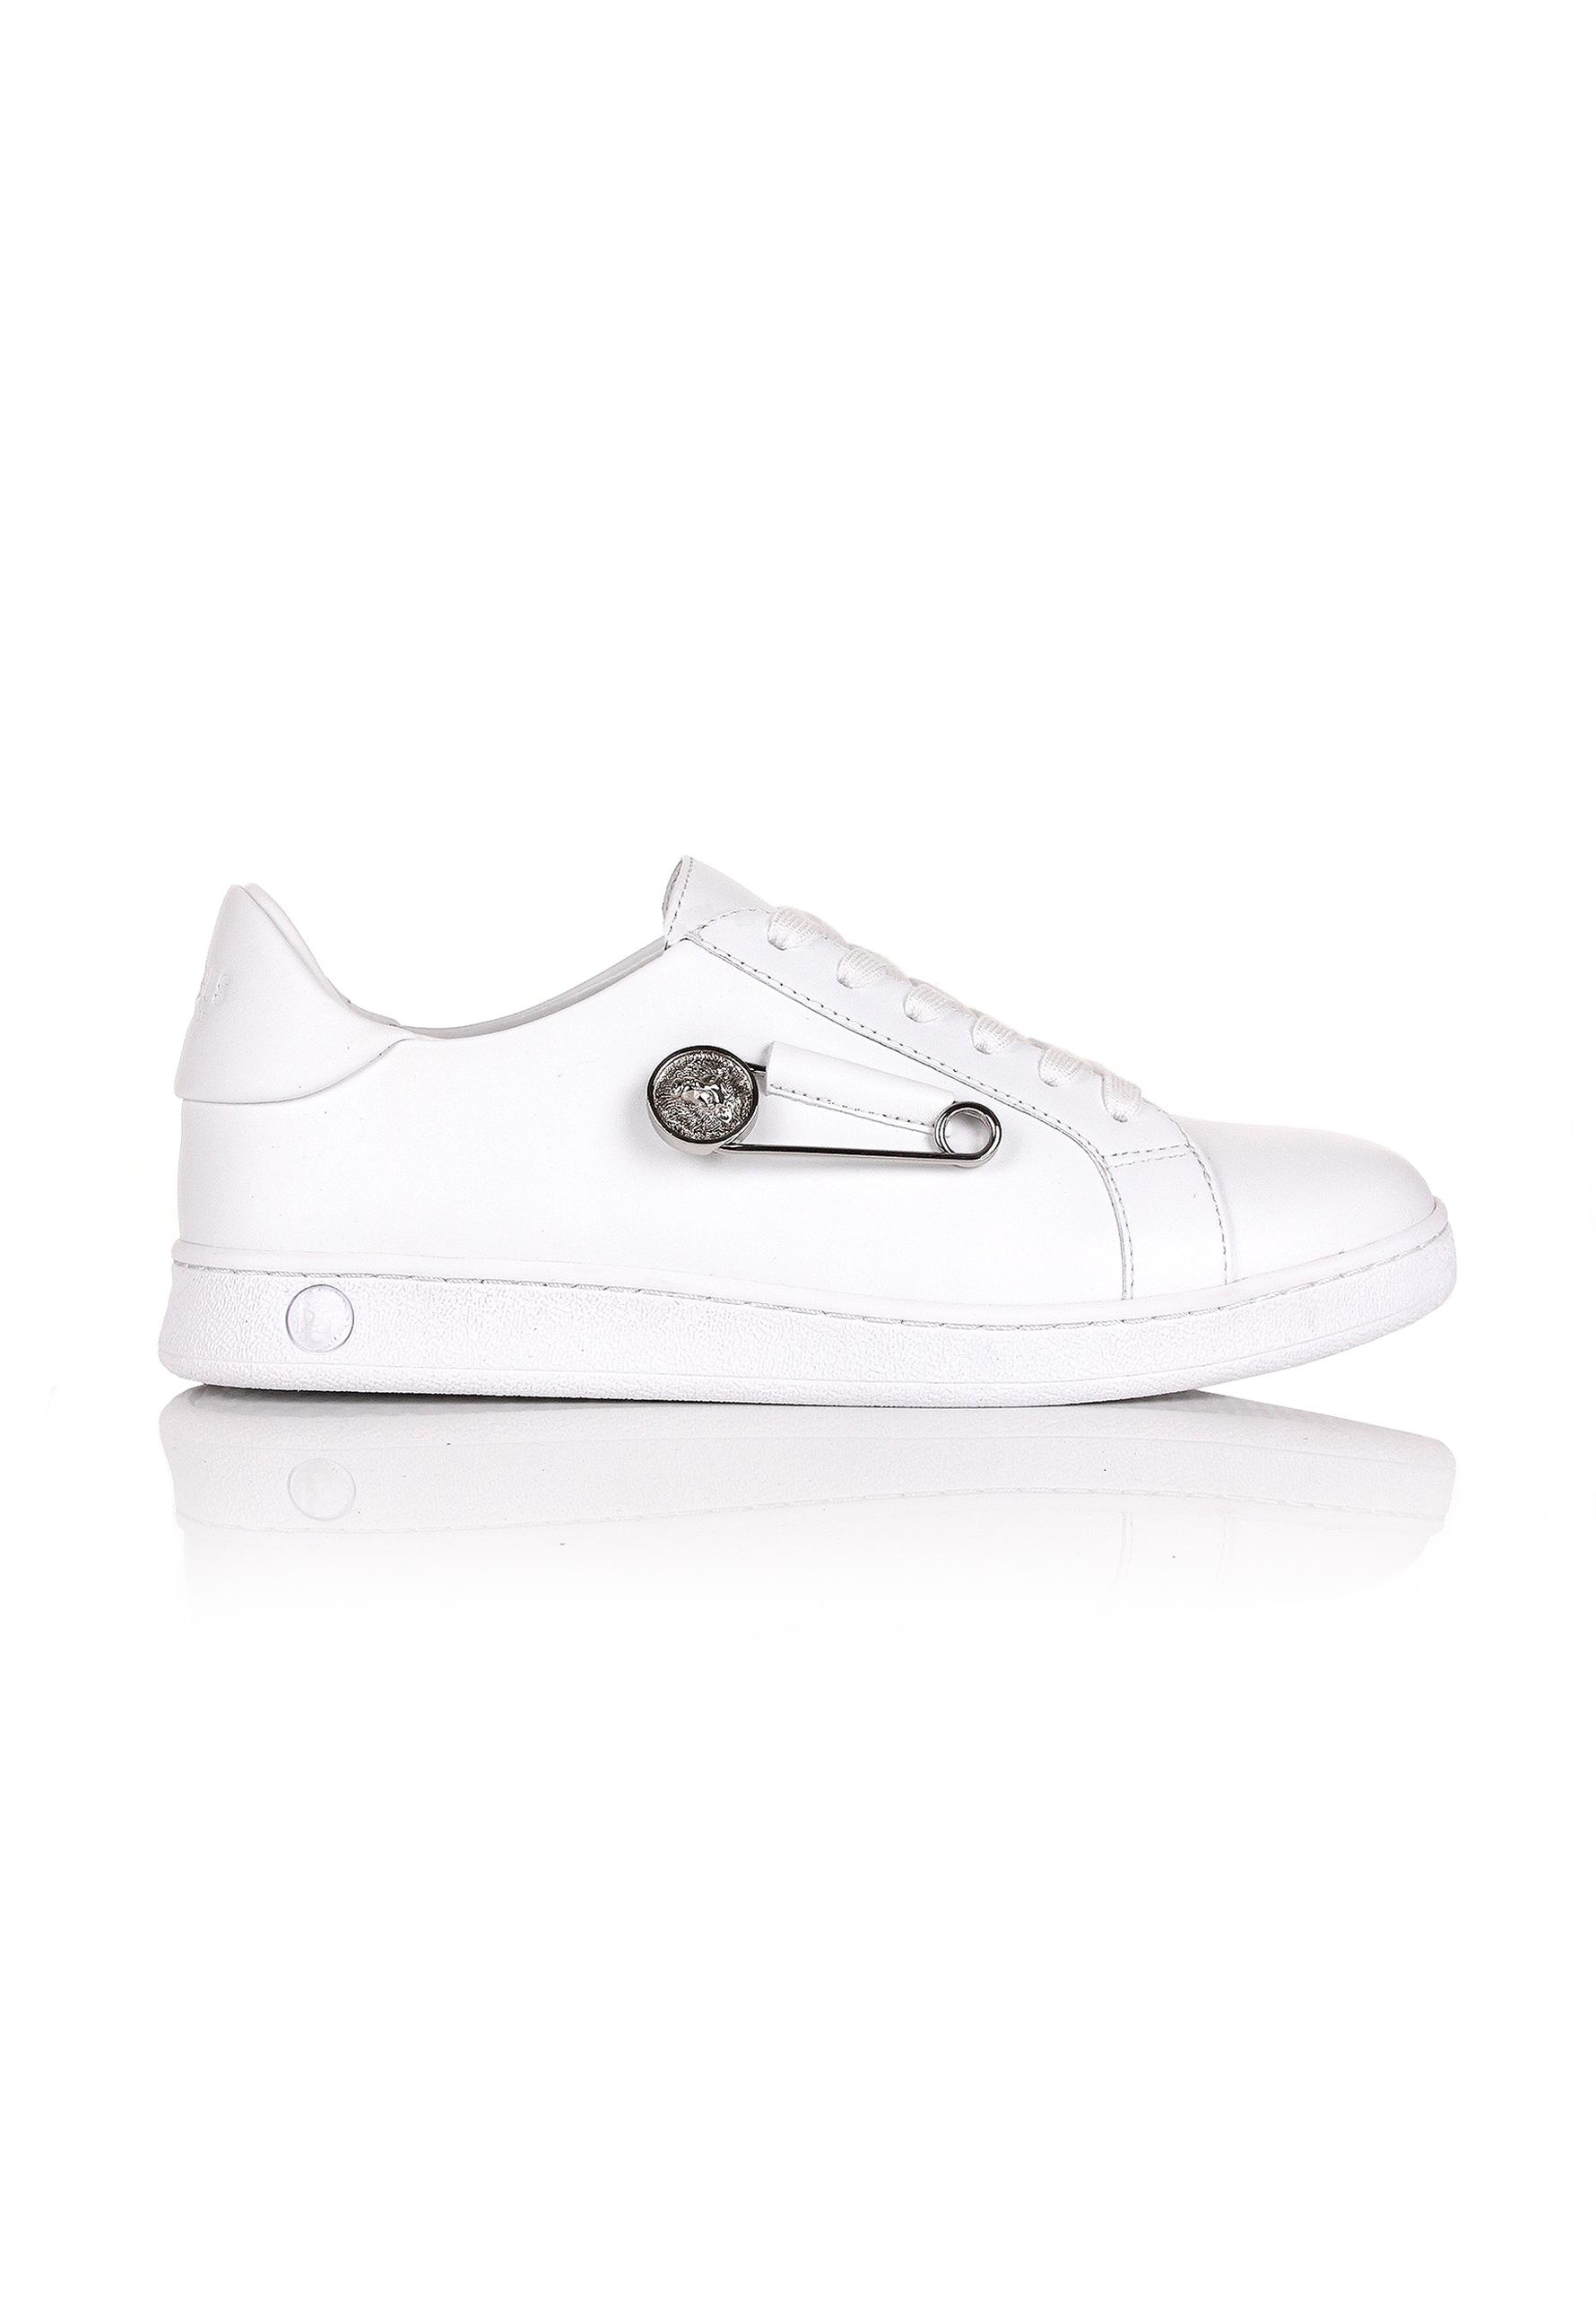 03dd5536bd Versus Safety Pin Sneakers White/white in White for Men - Lyst